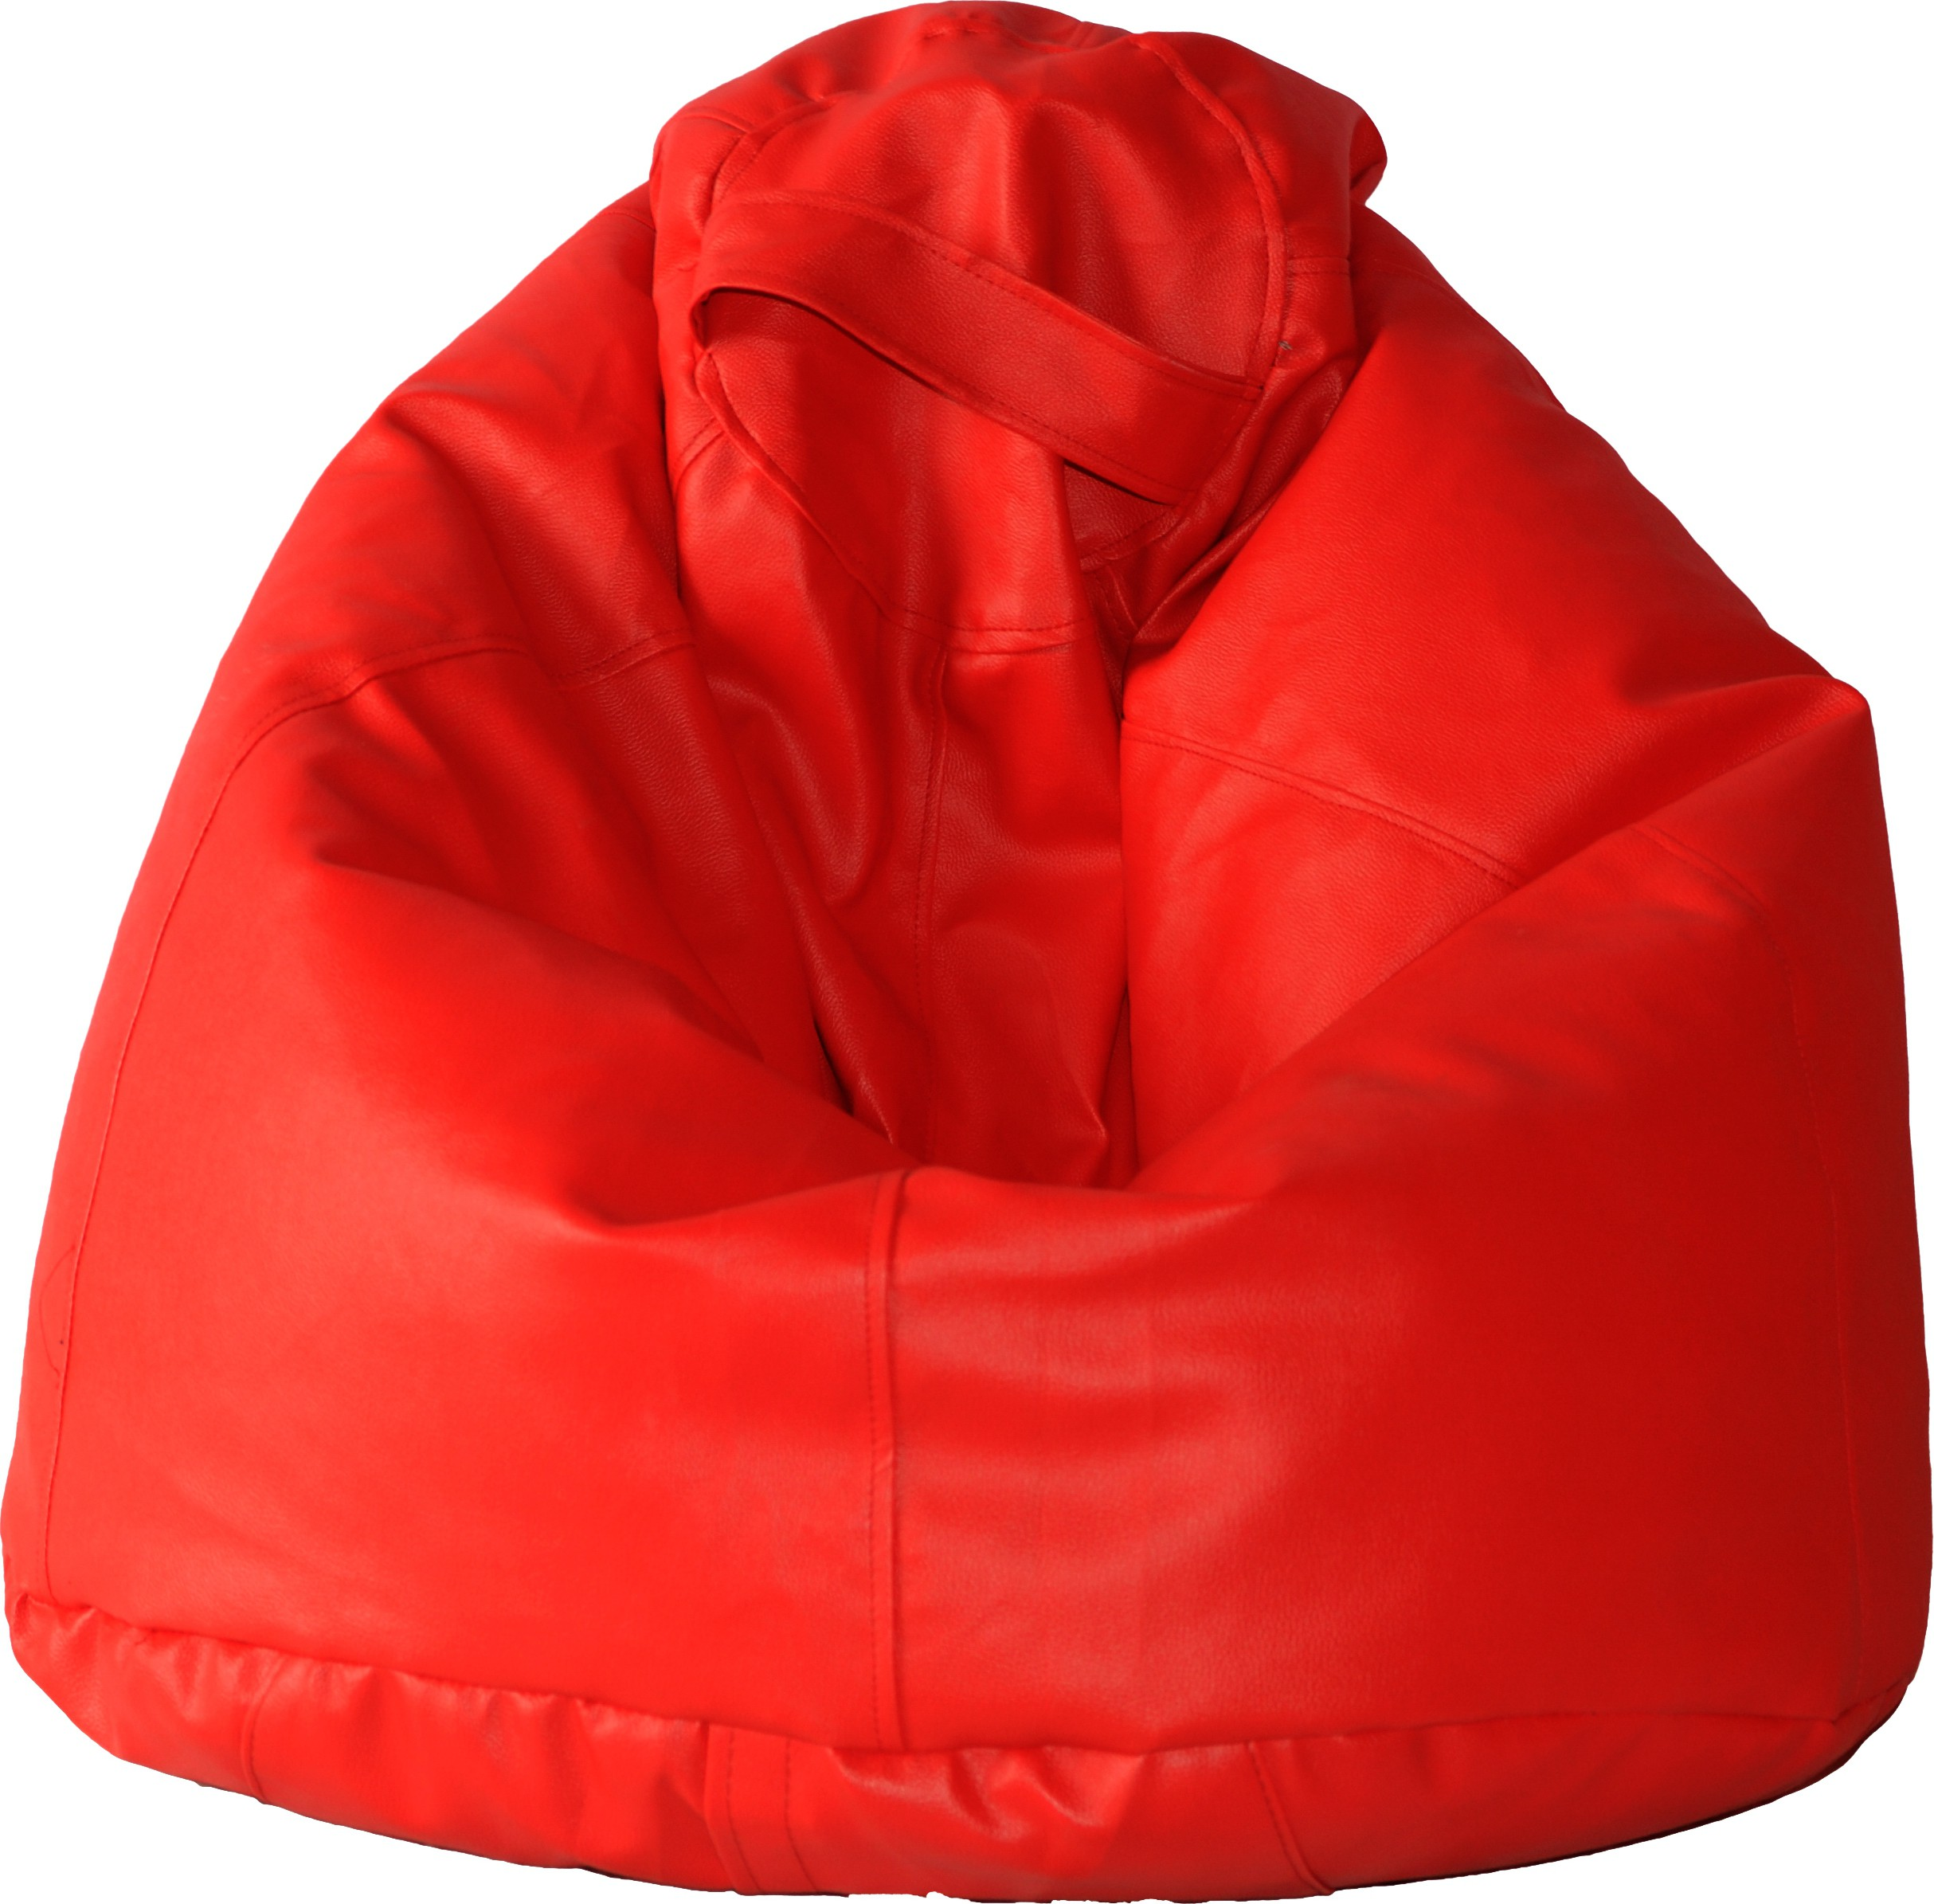 View Amaze XL Bean Bag Cover(Red) Furniture (Amaze)